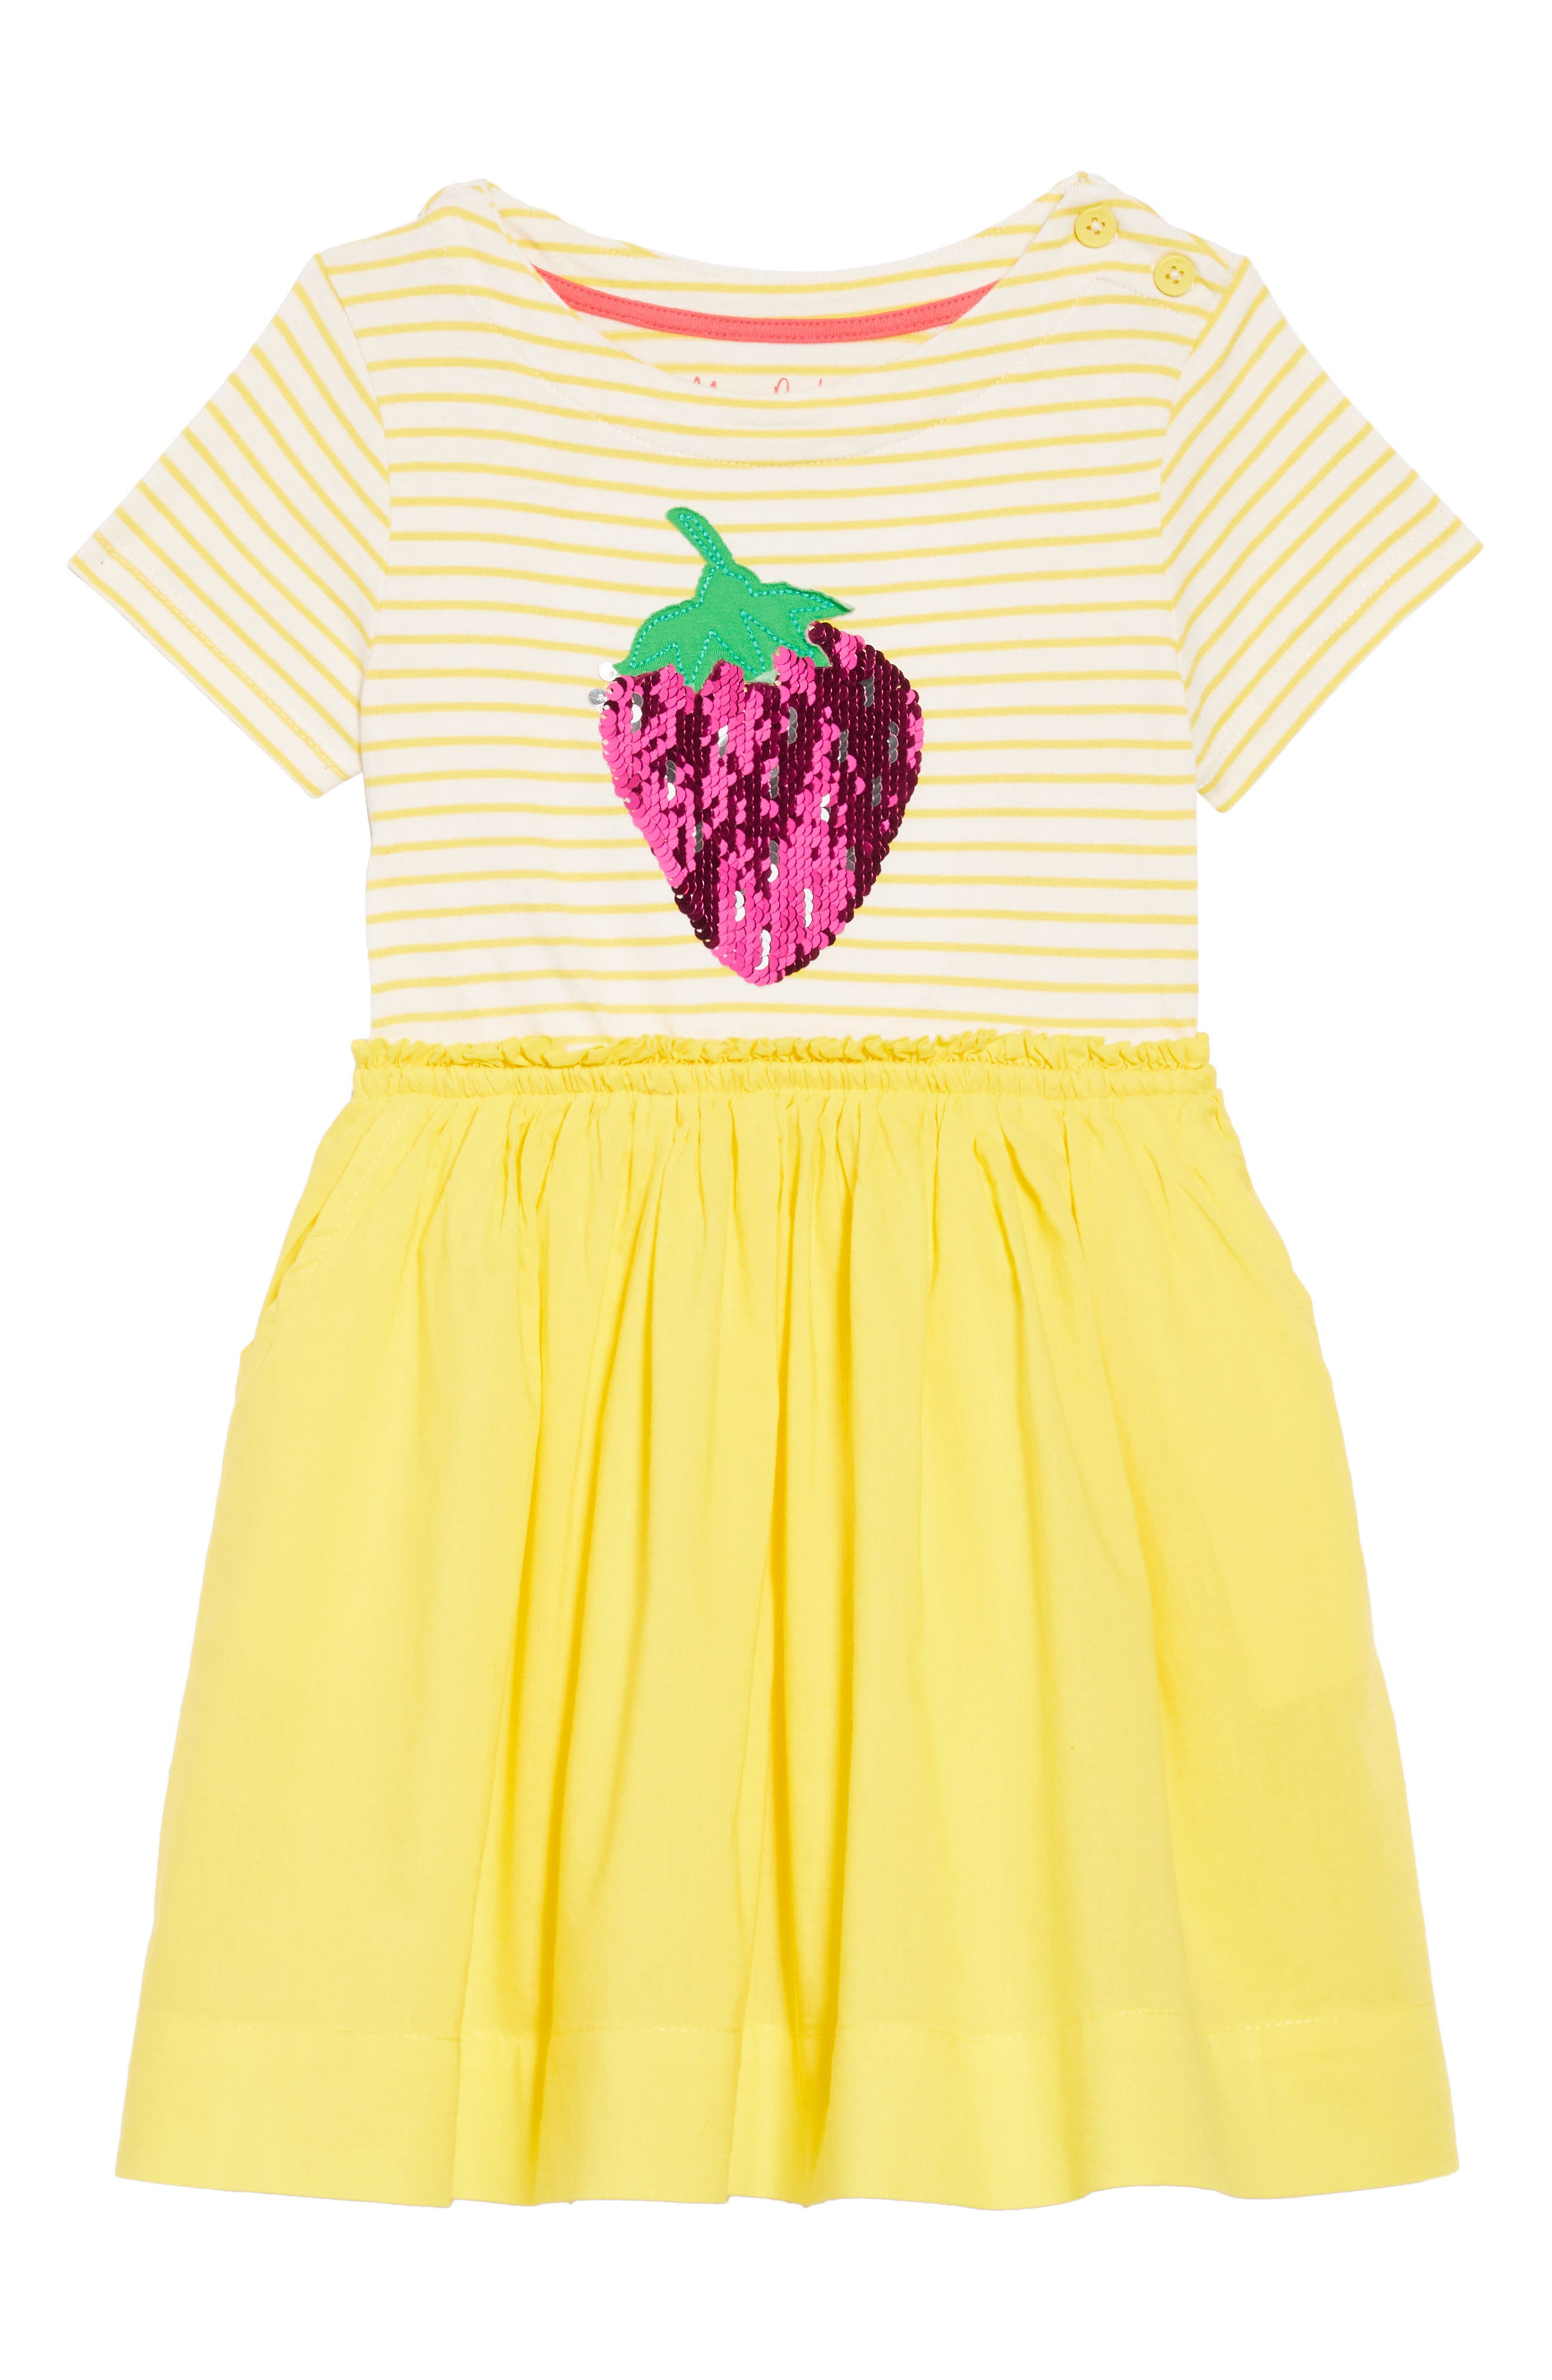 Color Change Sequin Strawberry Dress,                             Main thumbnail 1, color,                             Sunshine Yellow Strawberry